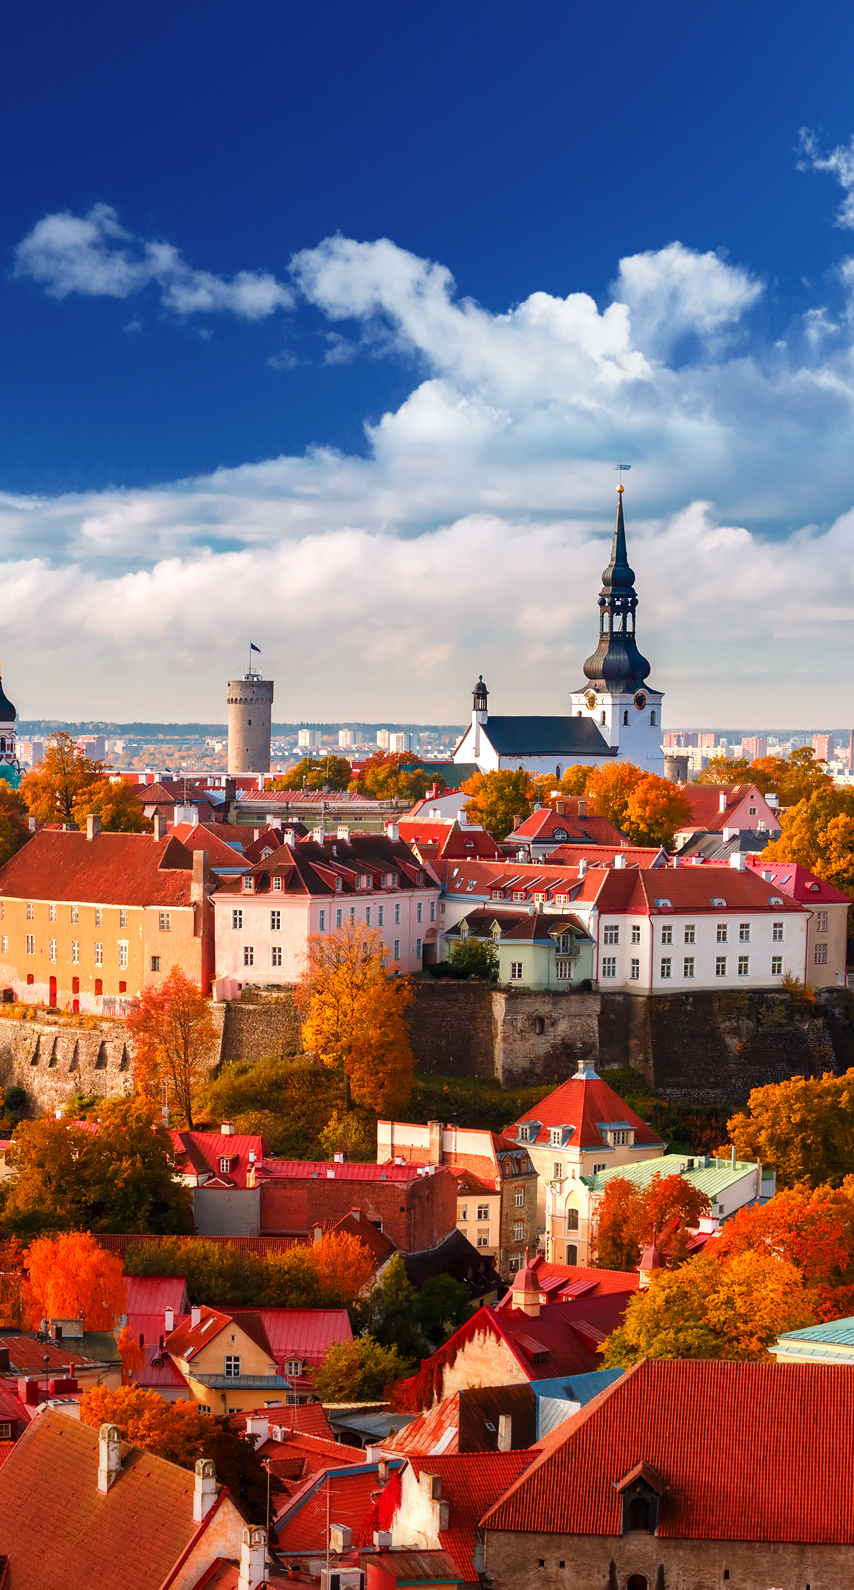 panoramic, tallinn, estonia, street, no person, people, outdoors, architecture, building, many, group, crowd, festival, tourism, town, tourist